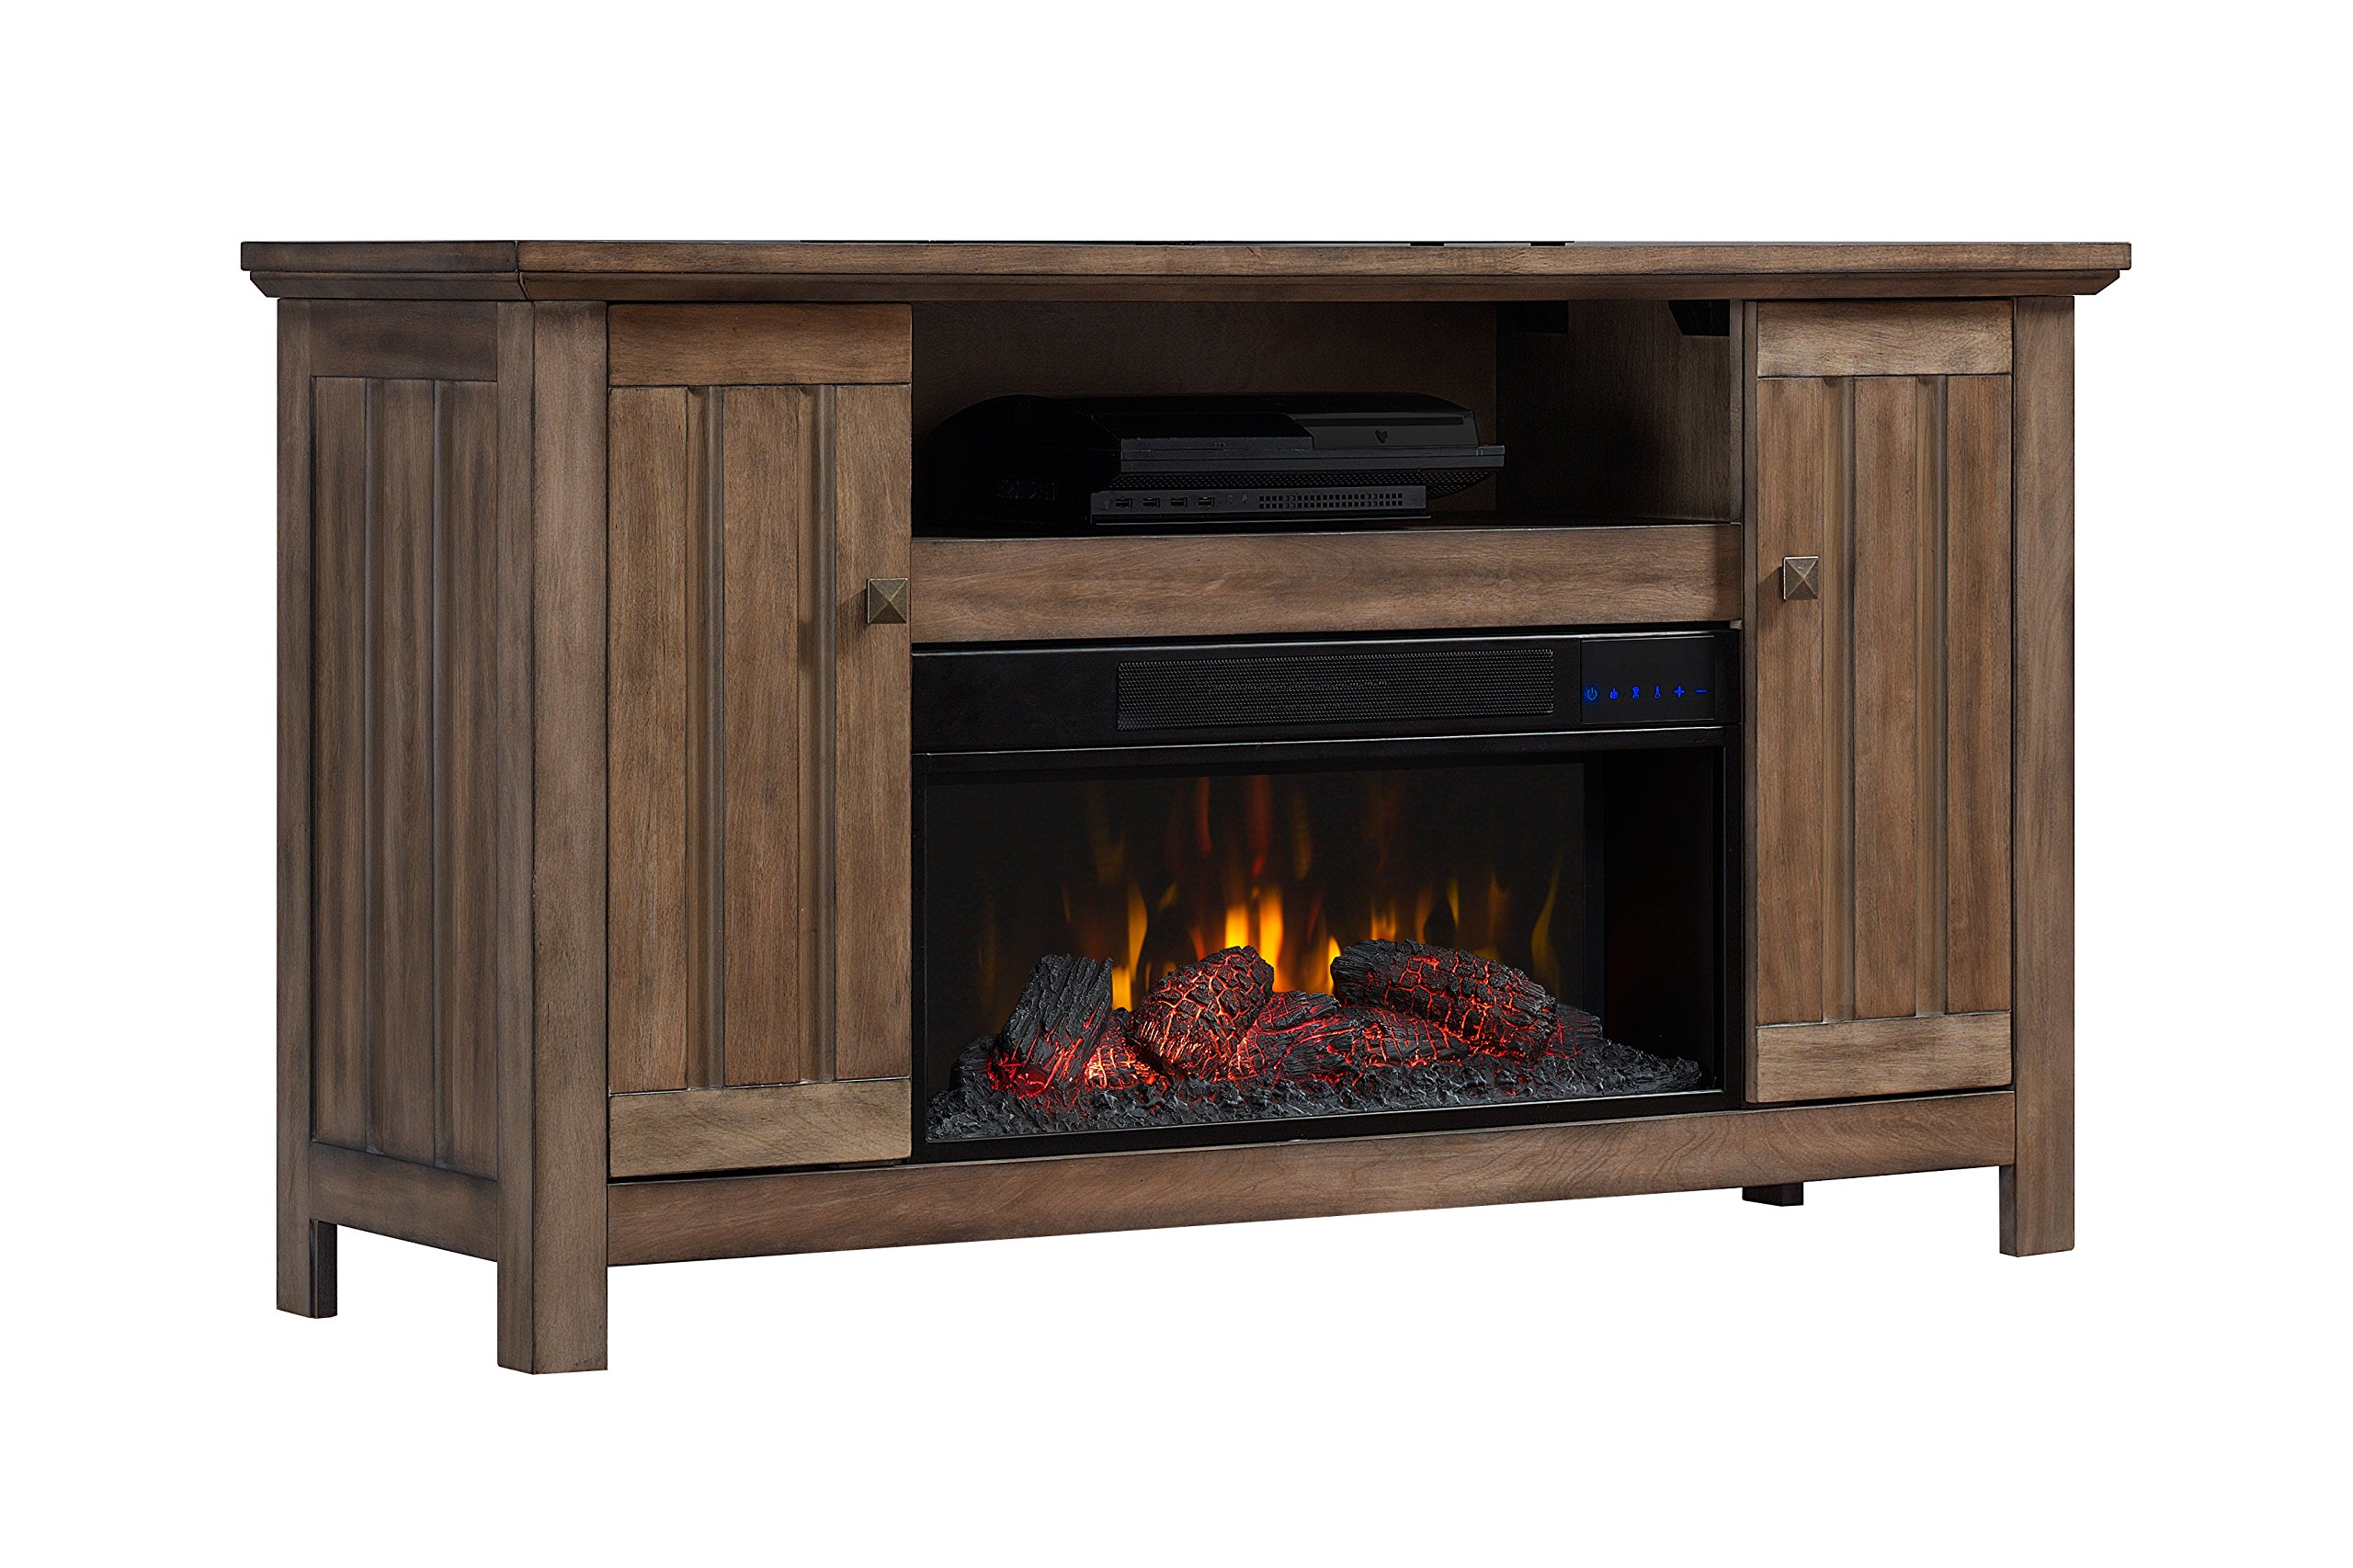 BoldFlame Fluligna 54'' Media Console Electric Fireplace with Storage Cabinets and Remote Control, Amber Barnwood by BoldFlame